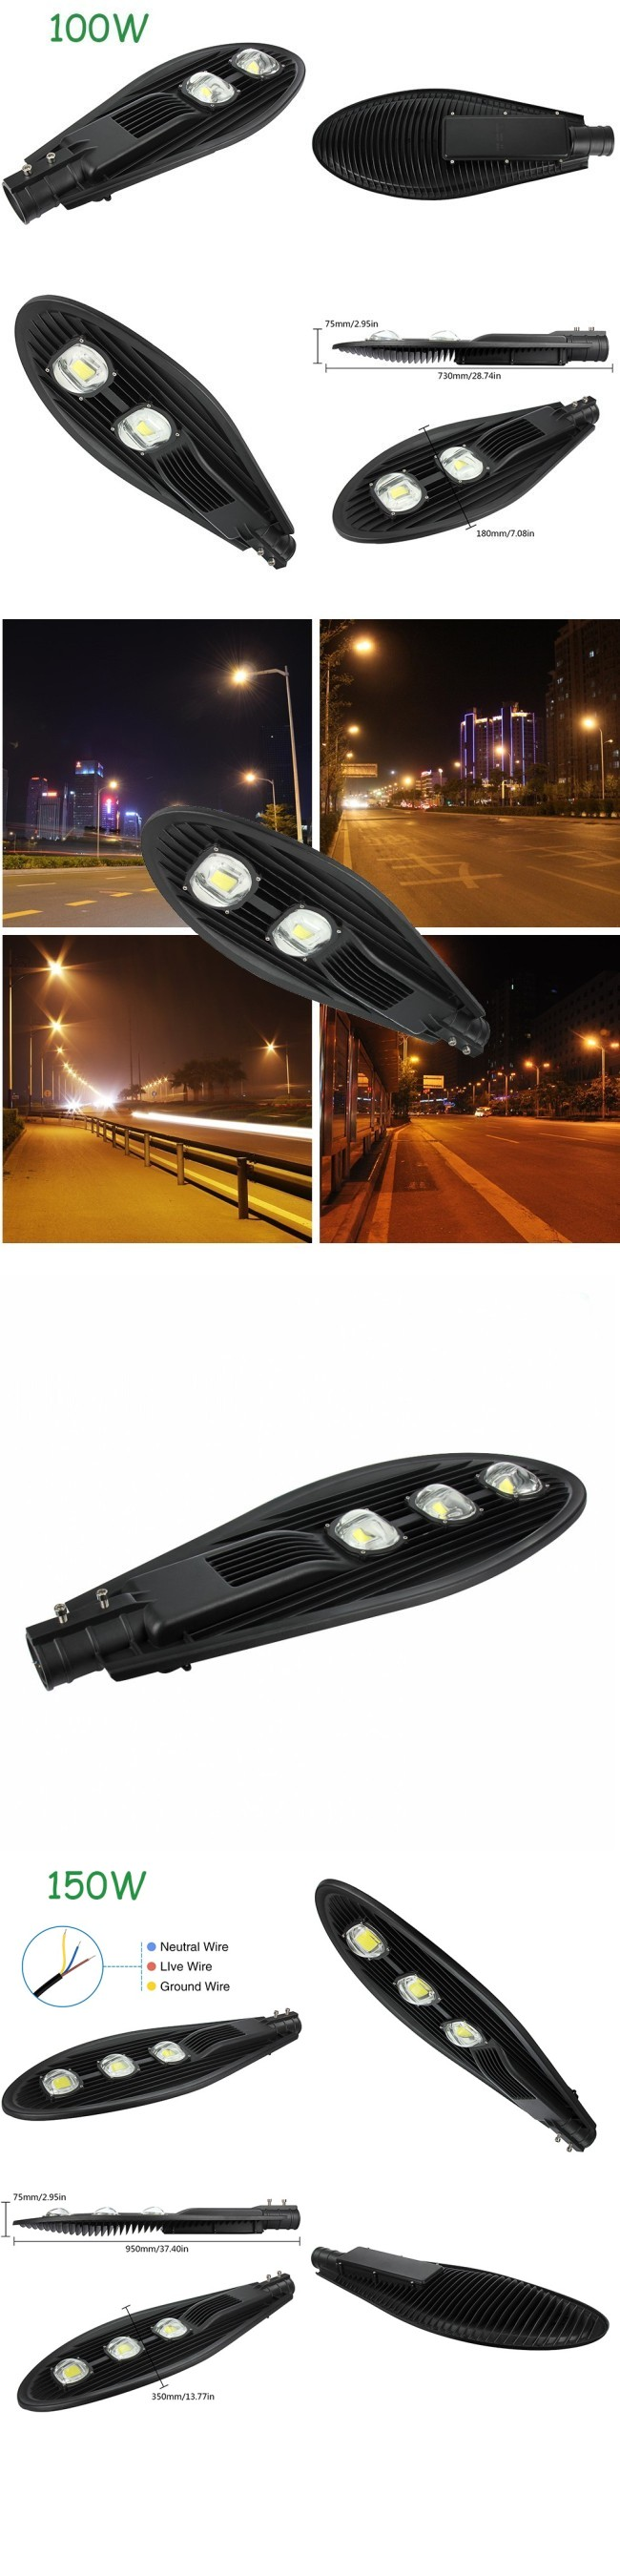 50W LED Street Light Highway COB LED Lamp Aluminum IP65